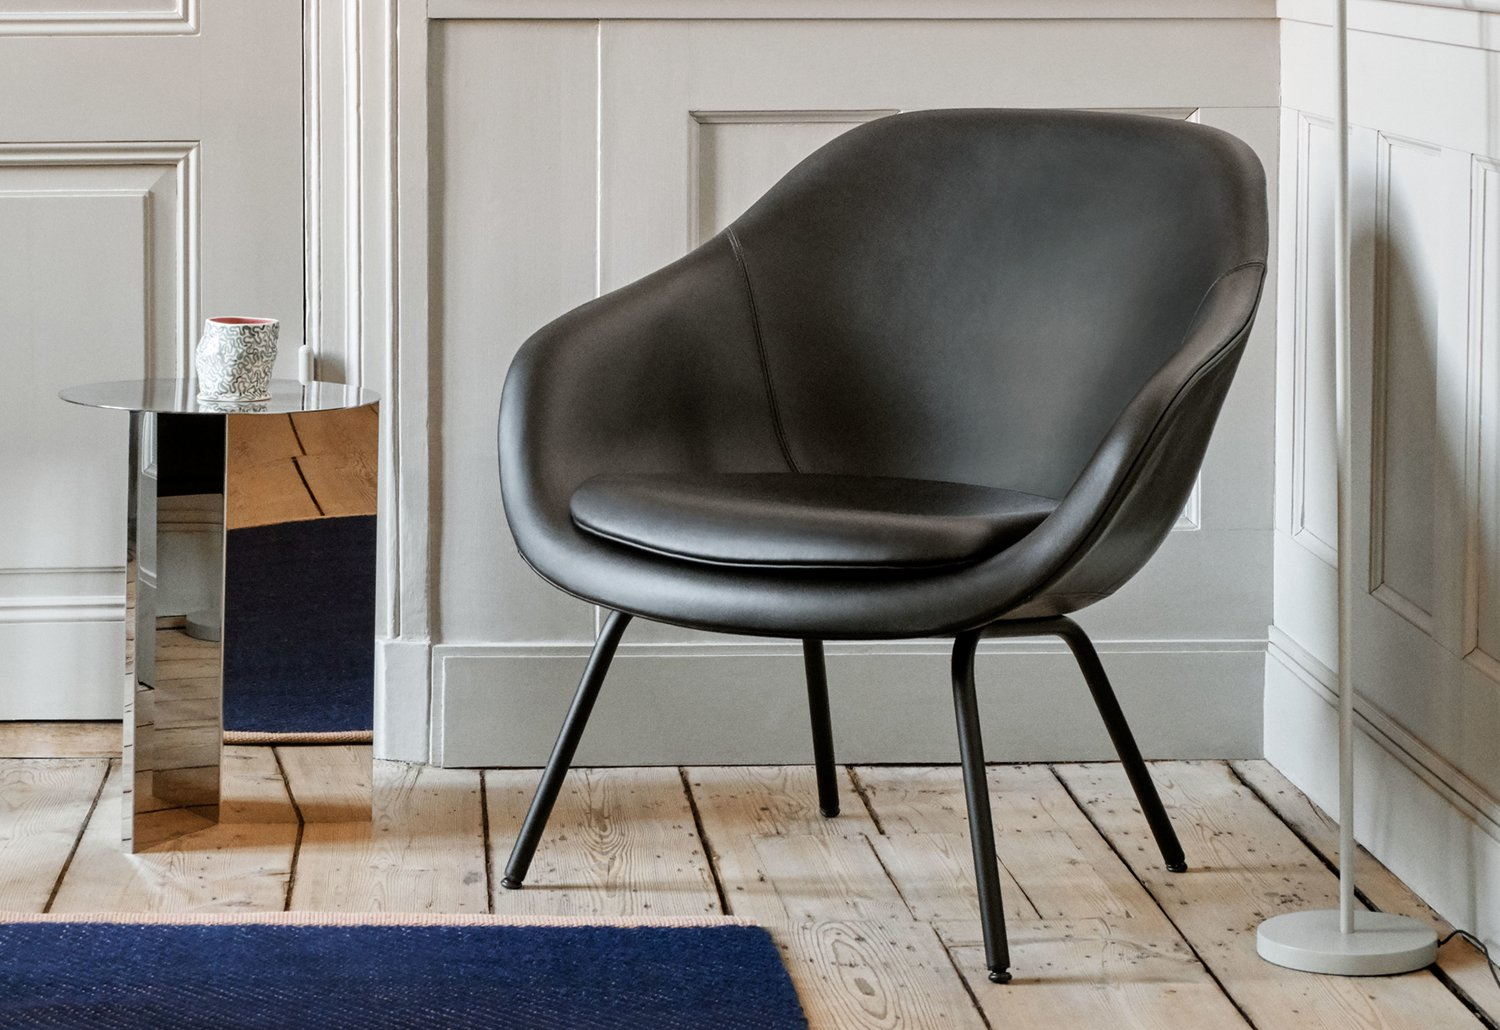 Hotel Lobbies and Waiting Spaces: A List Of 20 Modern Armchairs  modern armchairs Hotel Lobbies And Waiting Spaces: A List Of 20 Modern Armchairs Hotel Lobbies and Waiting Spaces A List Of 20 Modern Armchairs 10